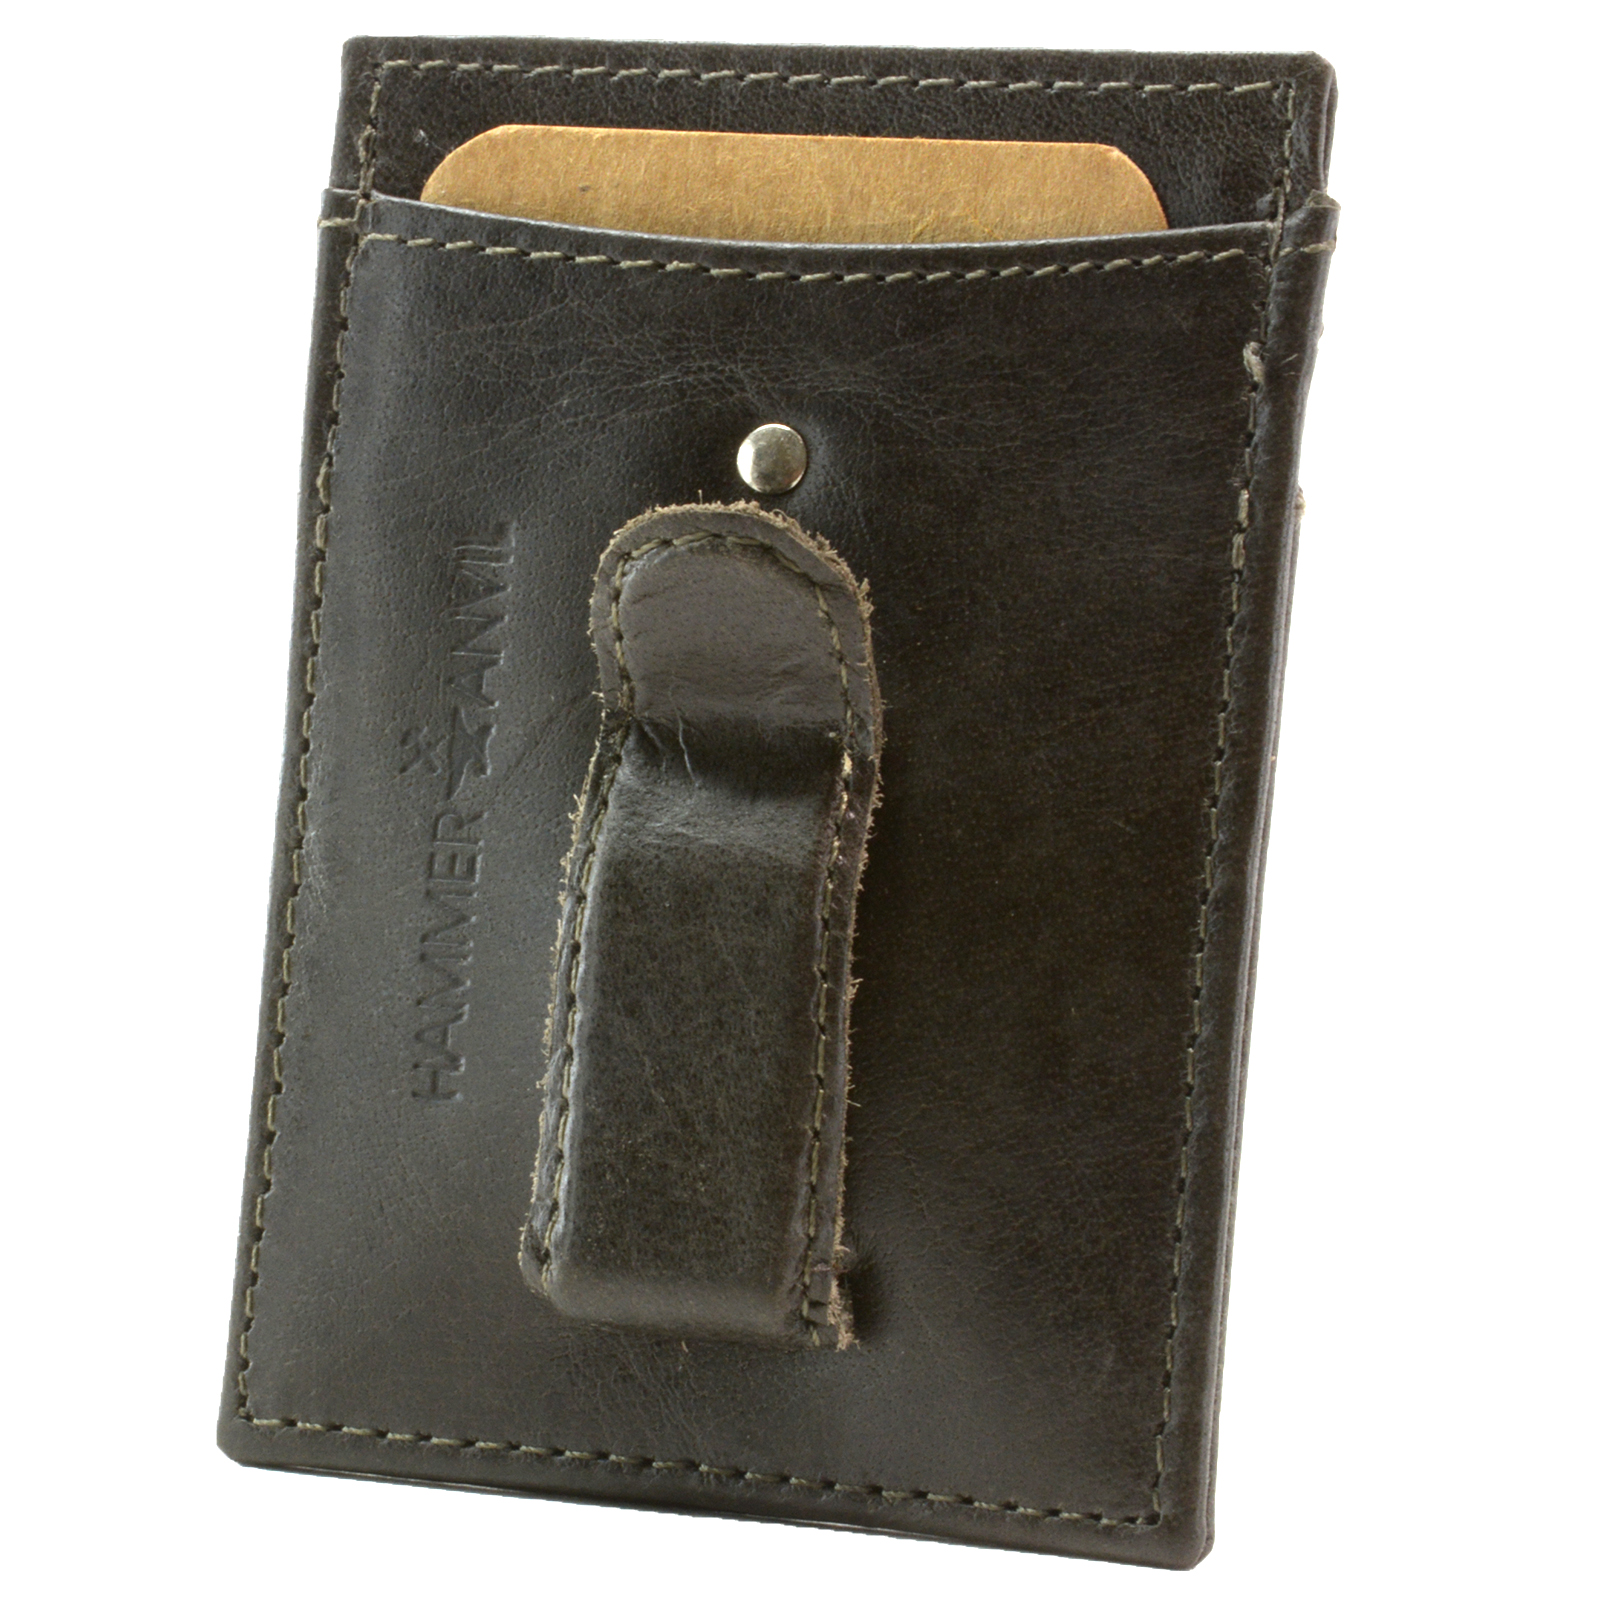 Minimalist Rfid Safe Hammer Anvil Front Pocket Wallet Money Clip Genuine Leather Ebay